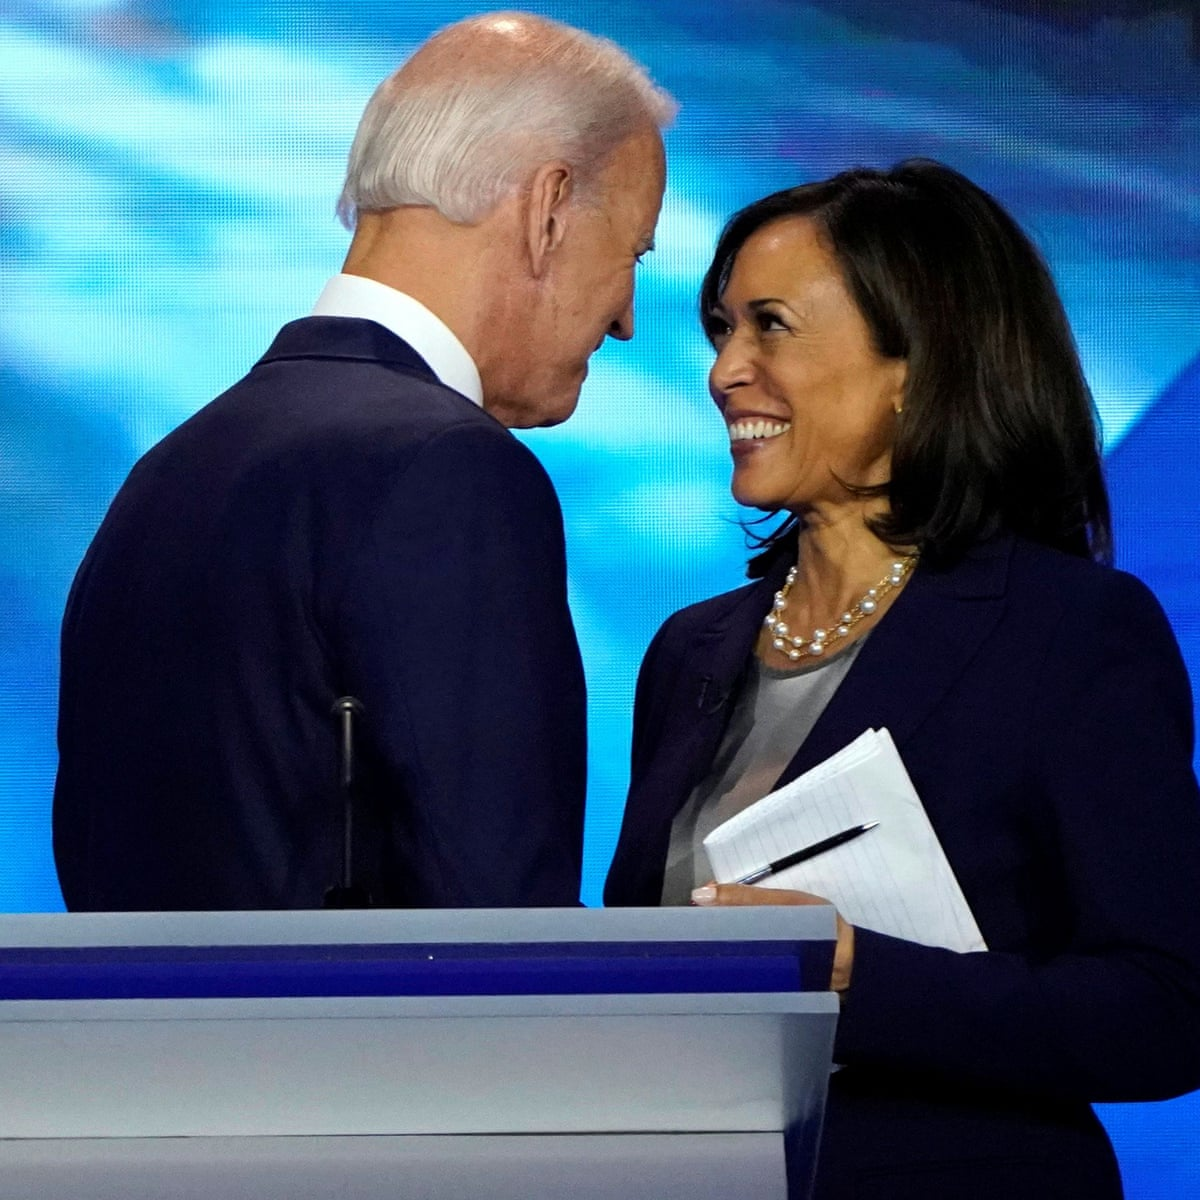 Joe Biden Needs More Than Virtue To Win He Will Have To Pick An Exciting Vice President Global The Guardian He described how, in 1972, he had just been elected a senator. joe biden needs more than virtue to win